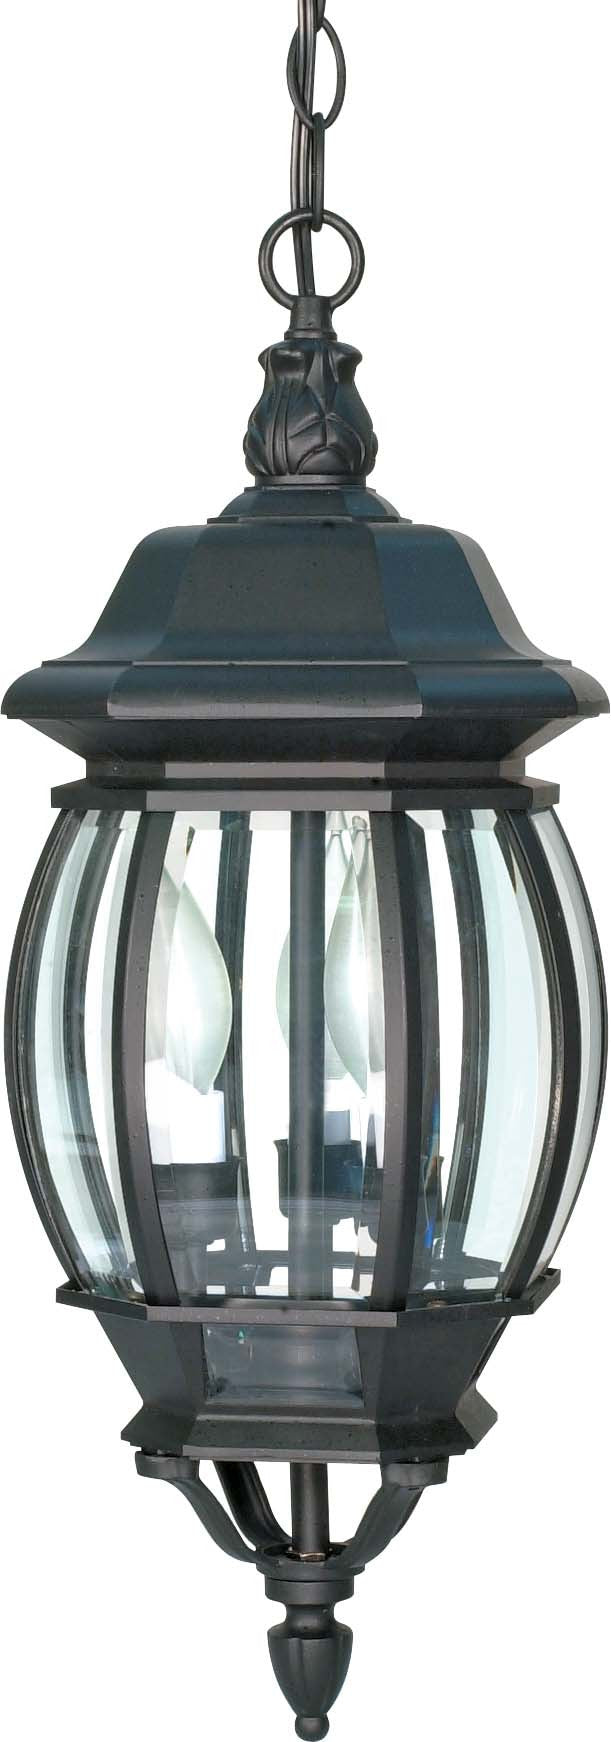 """Nuvo Central Park 3-Light 20"""" Hanging Lantern w/ Clear Glass in Textured Black"""